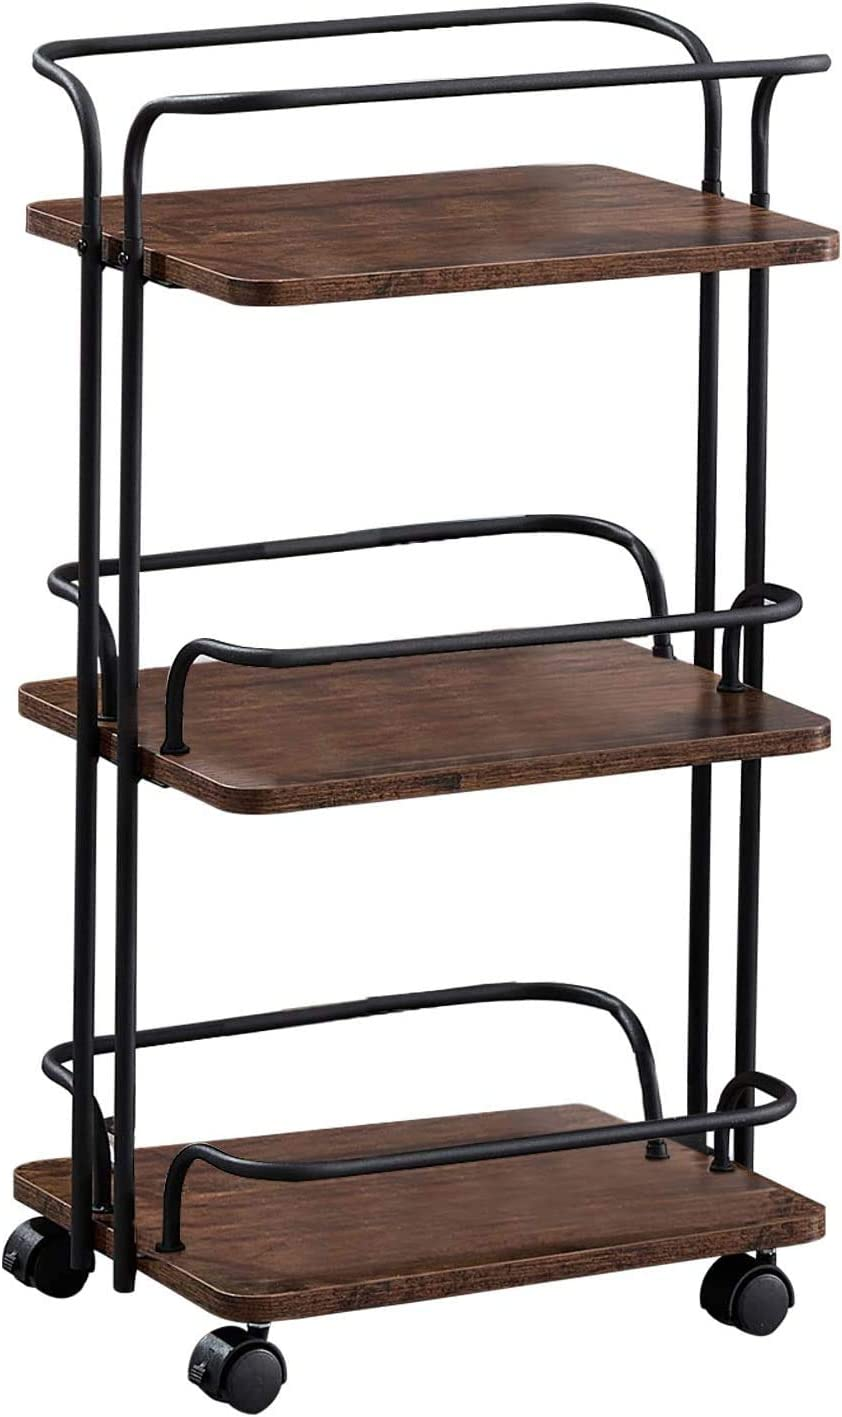 VECELO 3-Tier Rolling Utility Cart with Handle and Wheels Roller Makeup Organizer Storage for Kitchen, Office, Bedroom, Brown